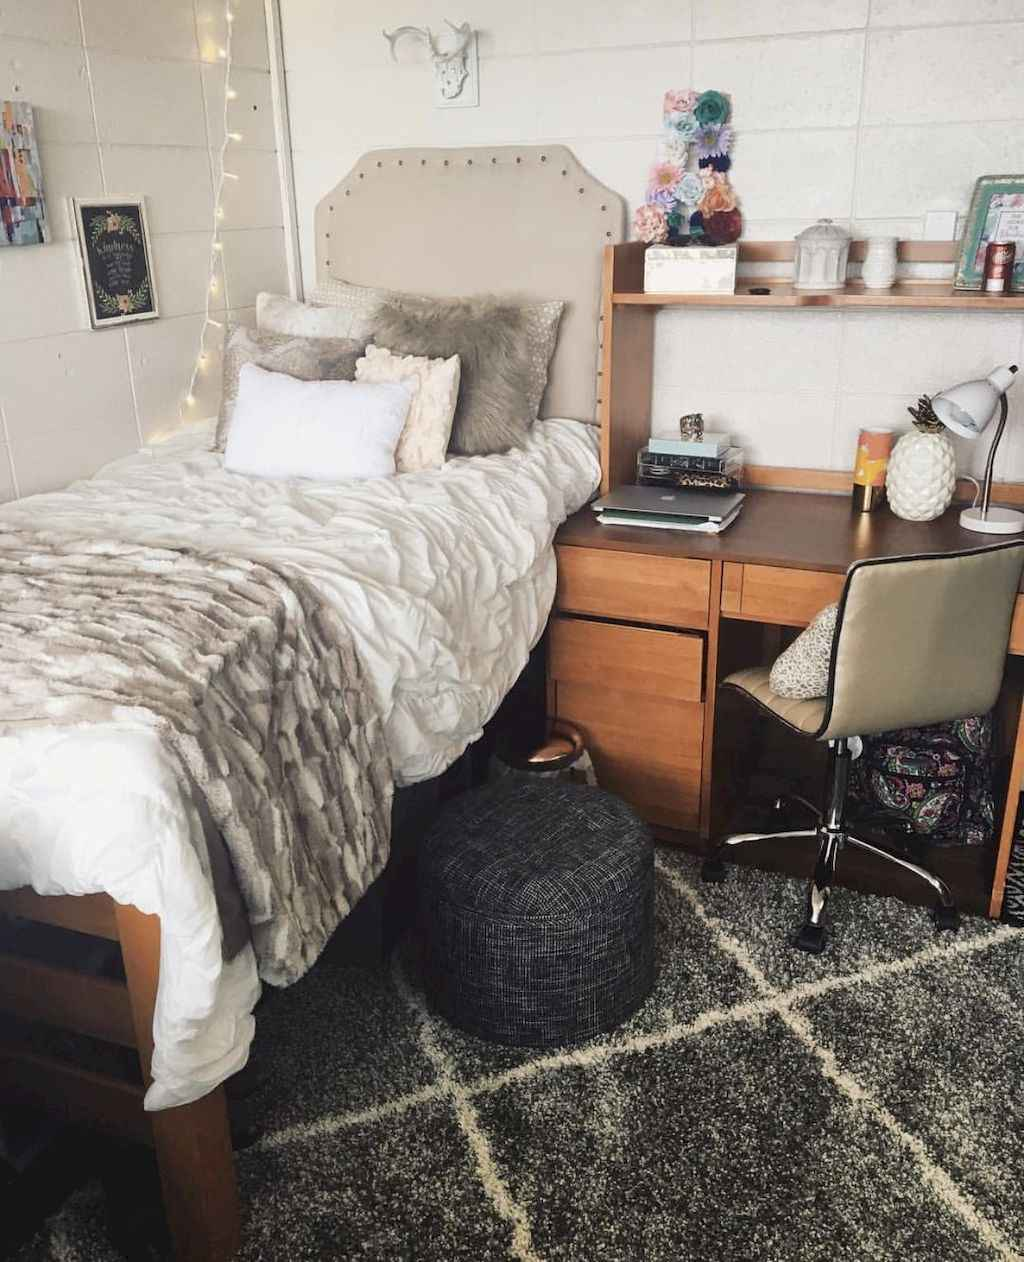 74 Easy DIY College Apartment Decor Ideas on A Budget